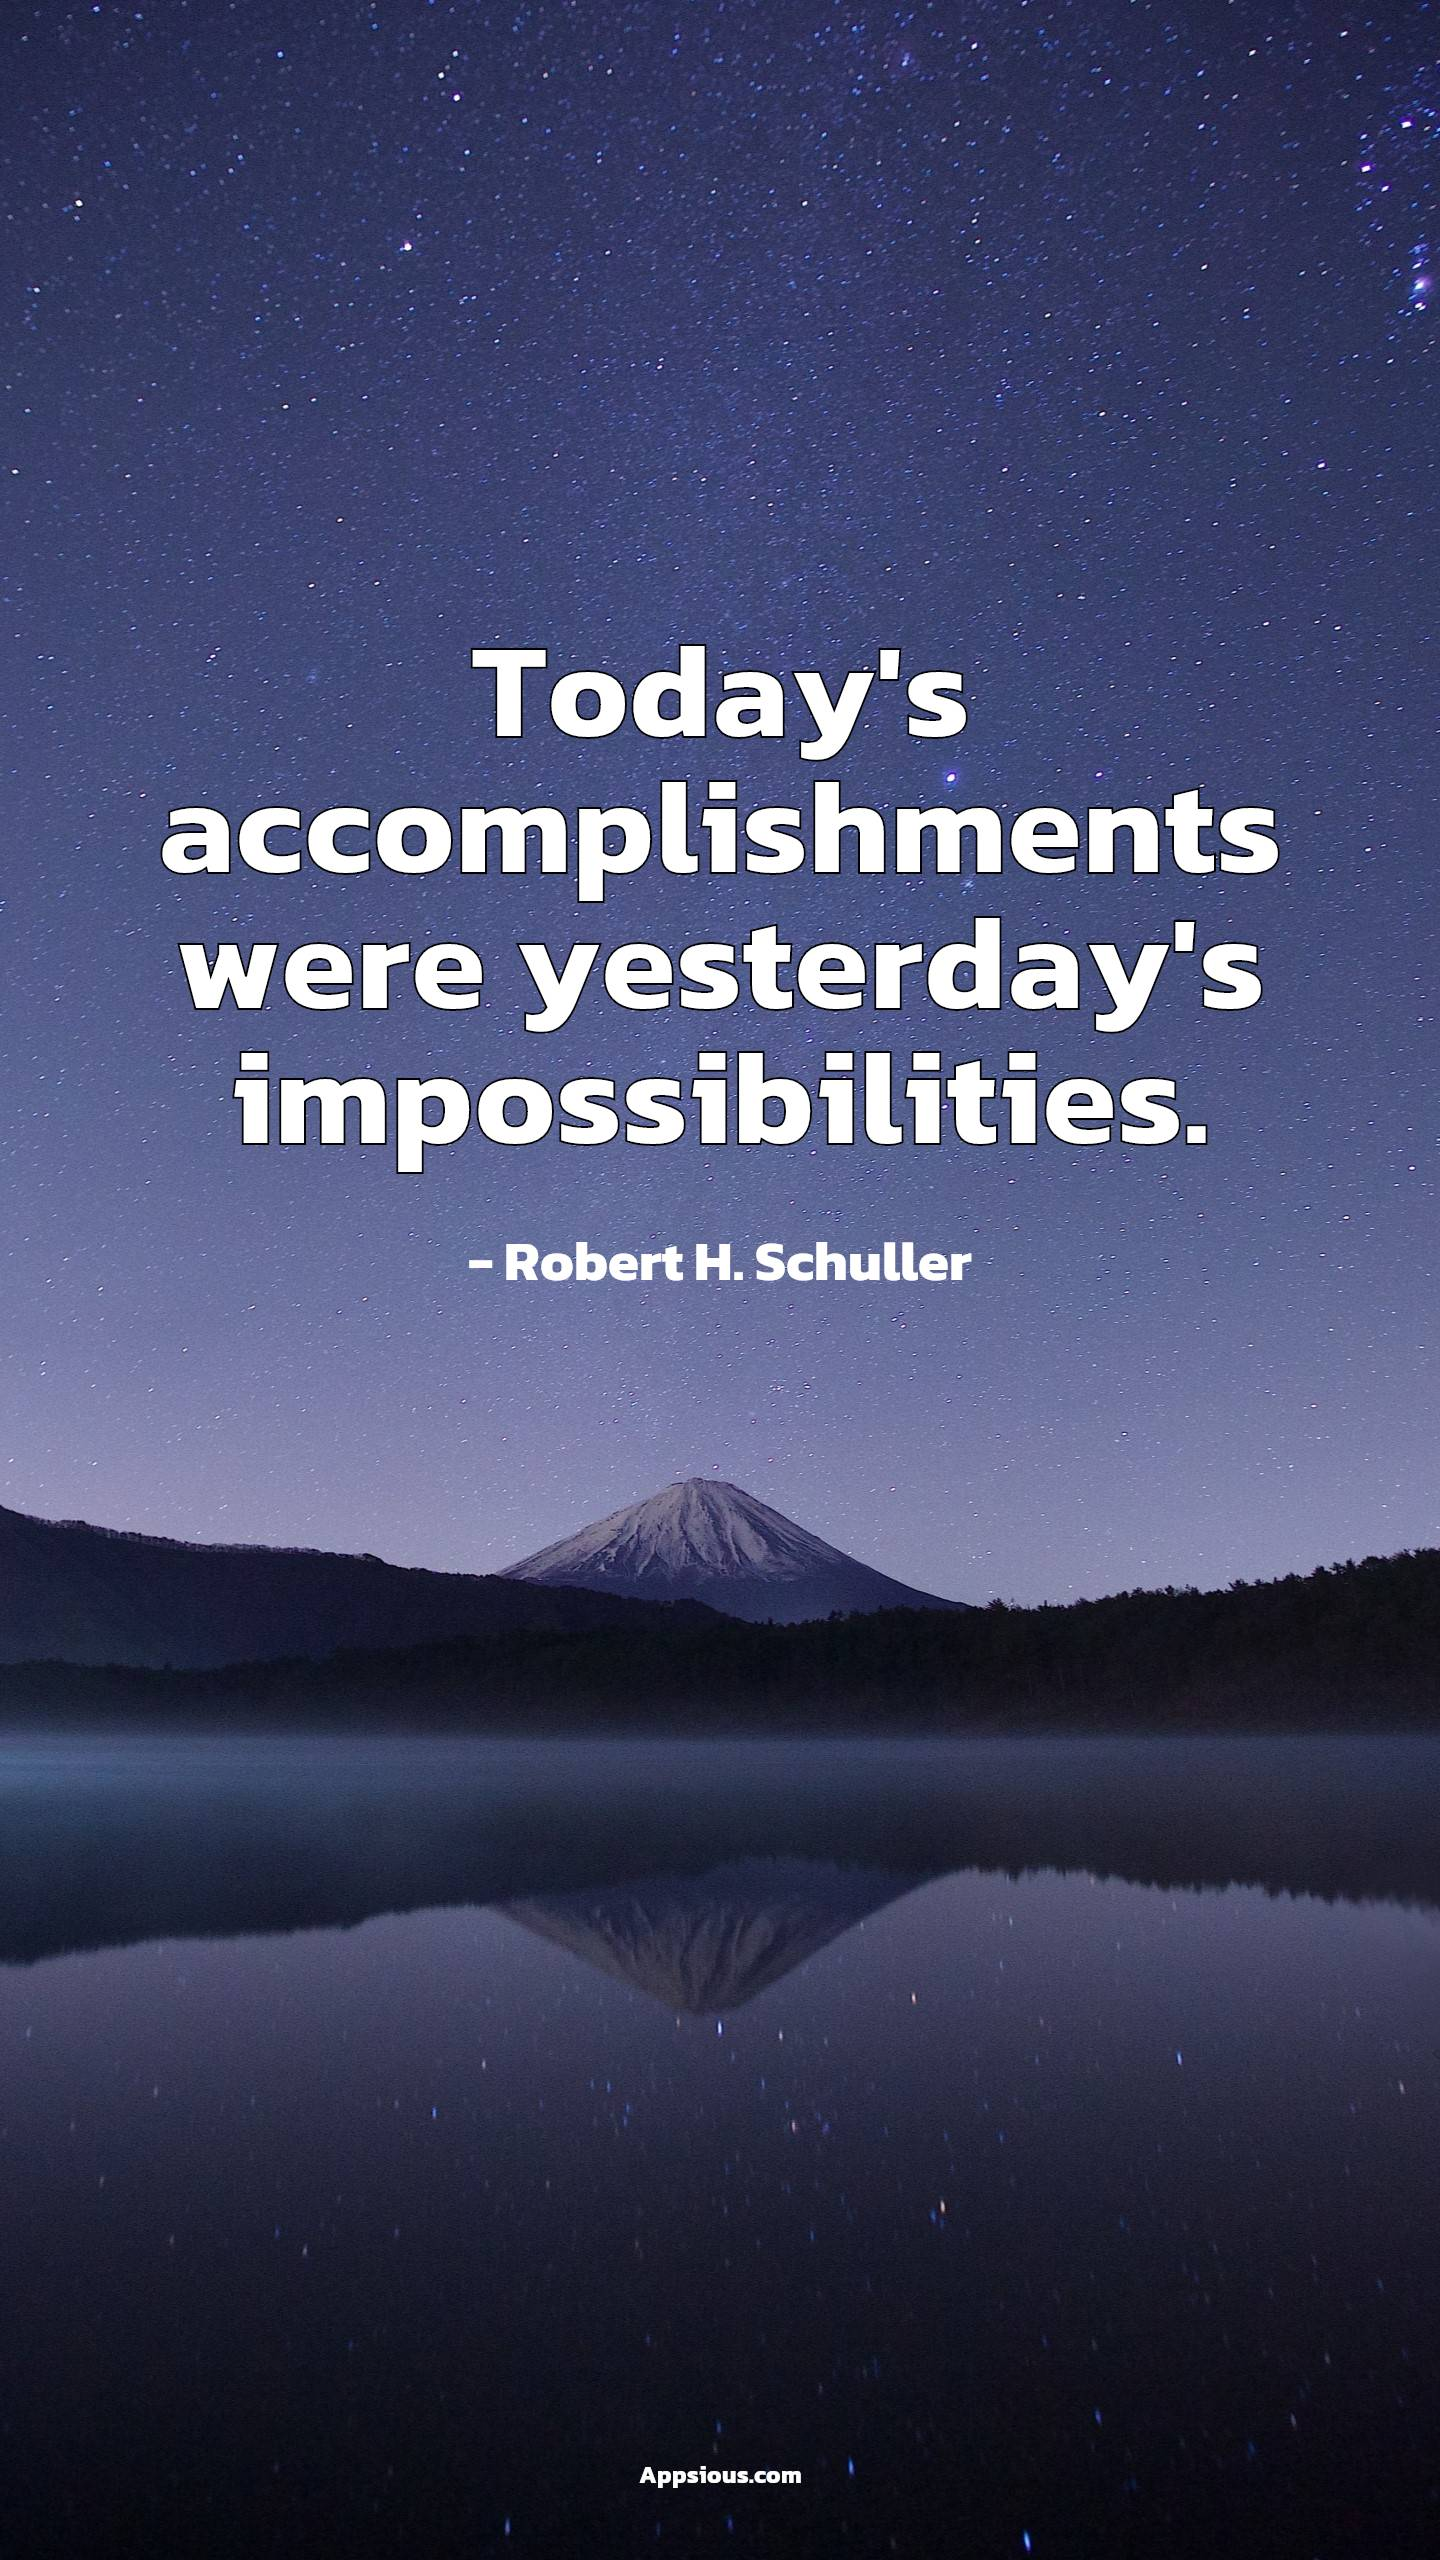 Today's accomplishments were yesterday's impossibilities.